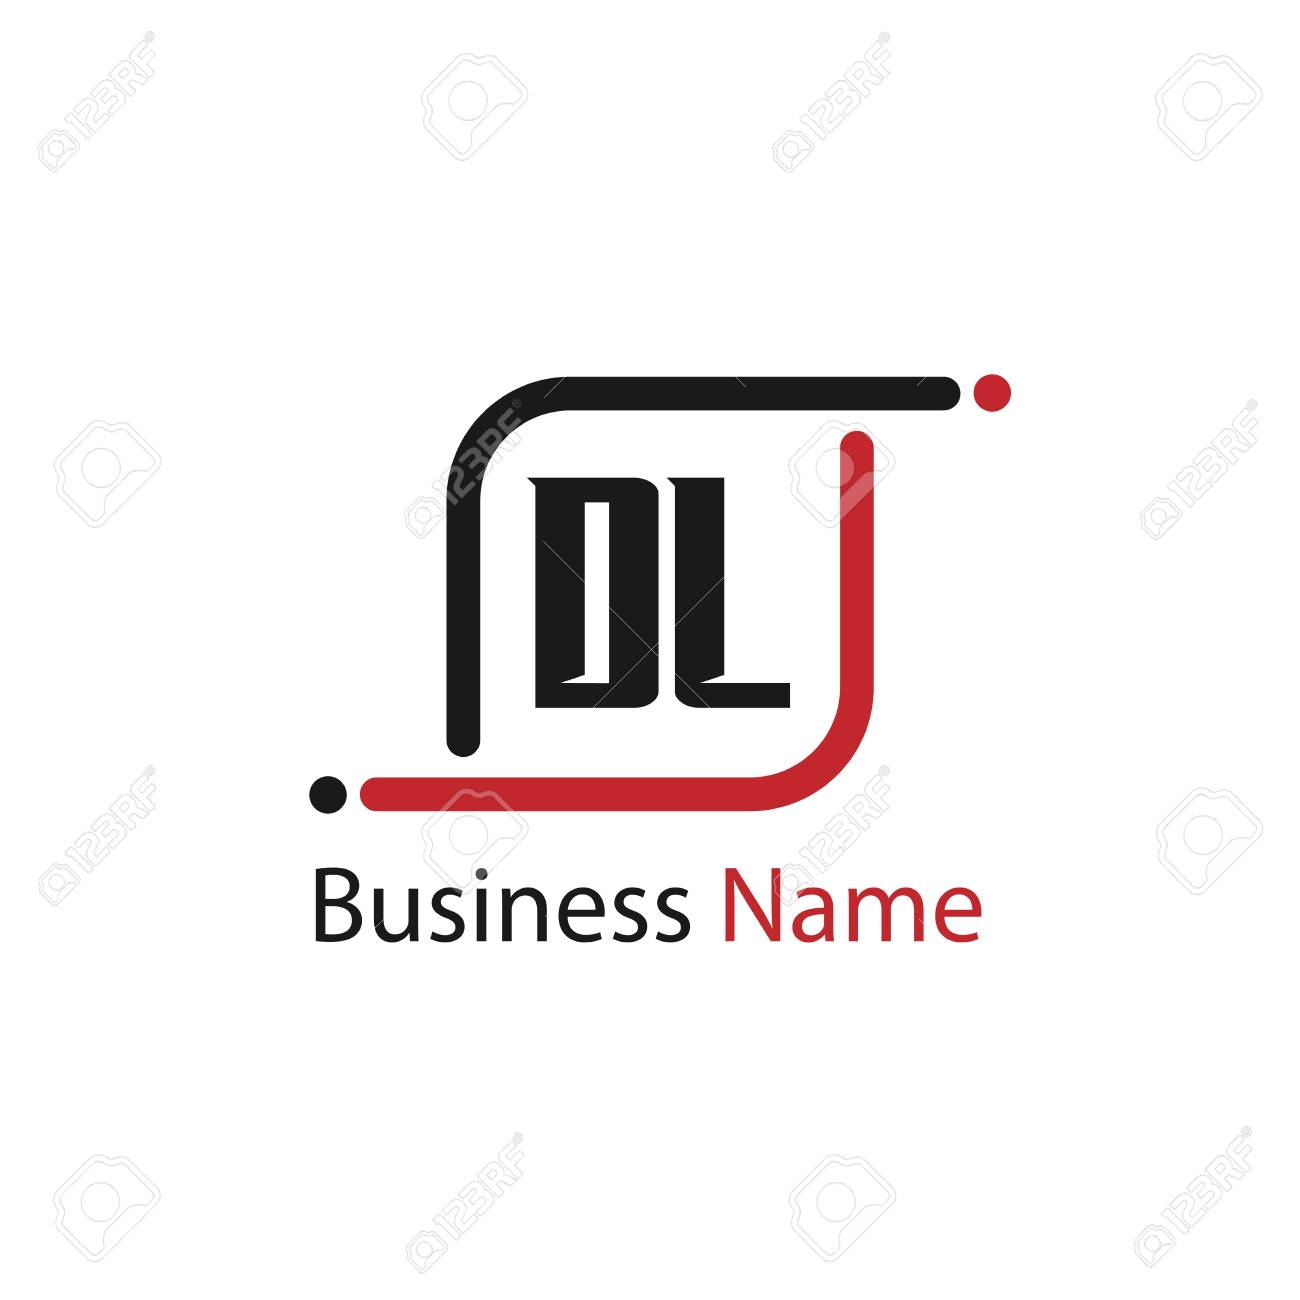 Initial Letter Dl Logo Template Design Royalty Free Cliparts Vectors And Stock Illustration Image 110733370